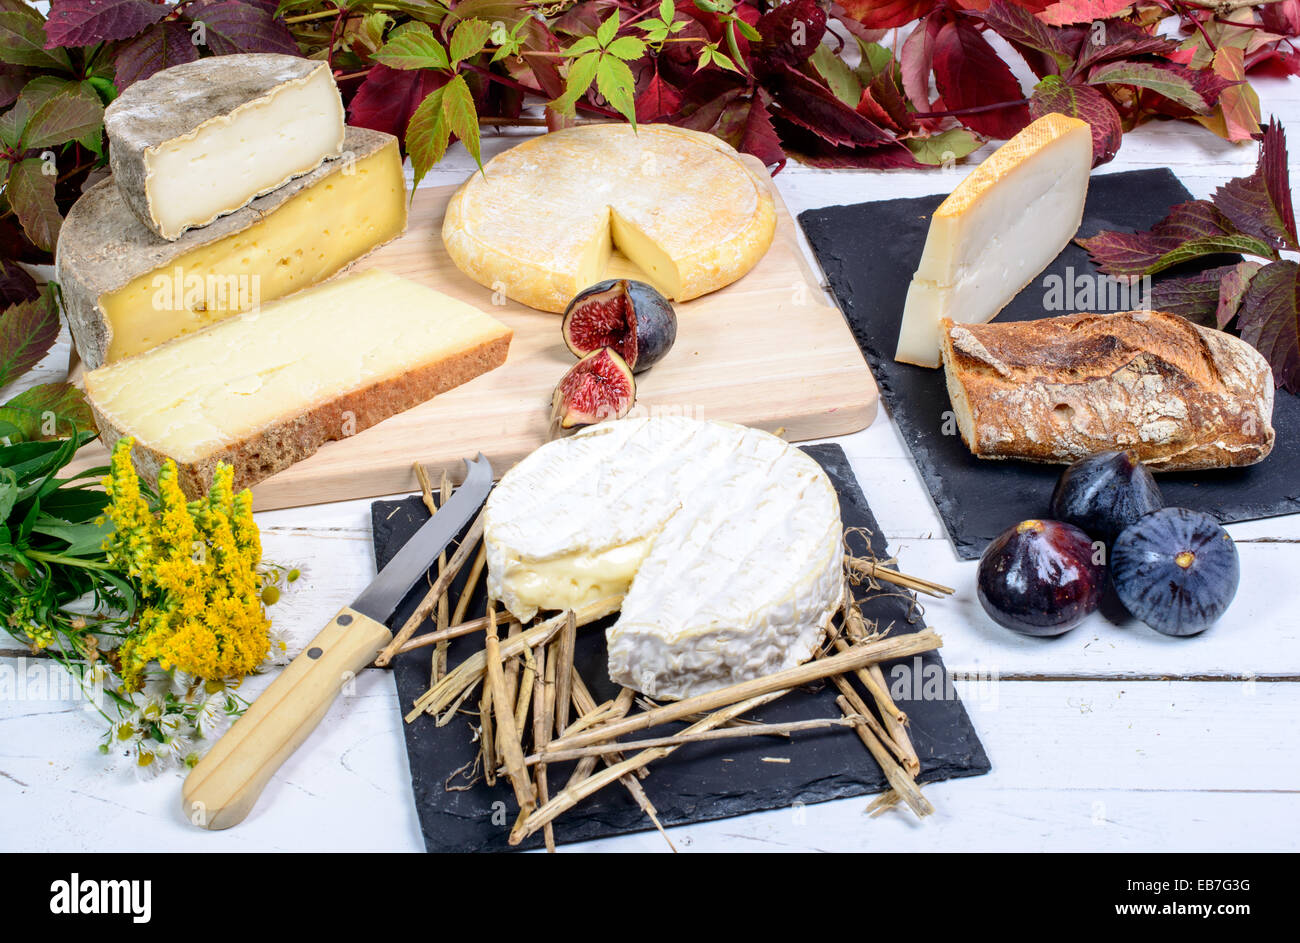 Camembert of Normandy with different French cheeses - Stock Image